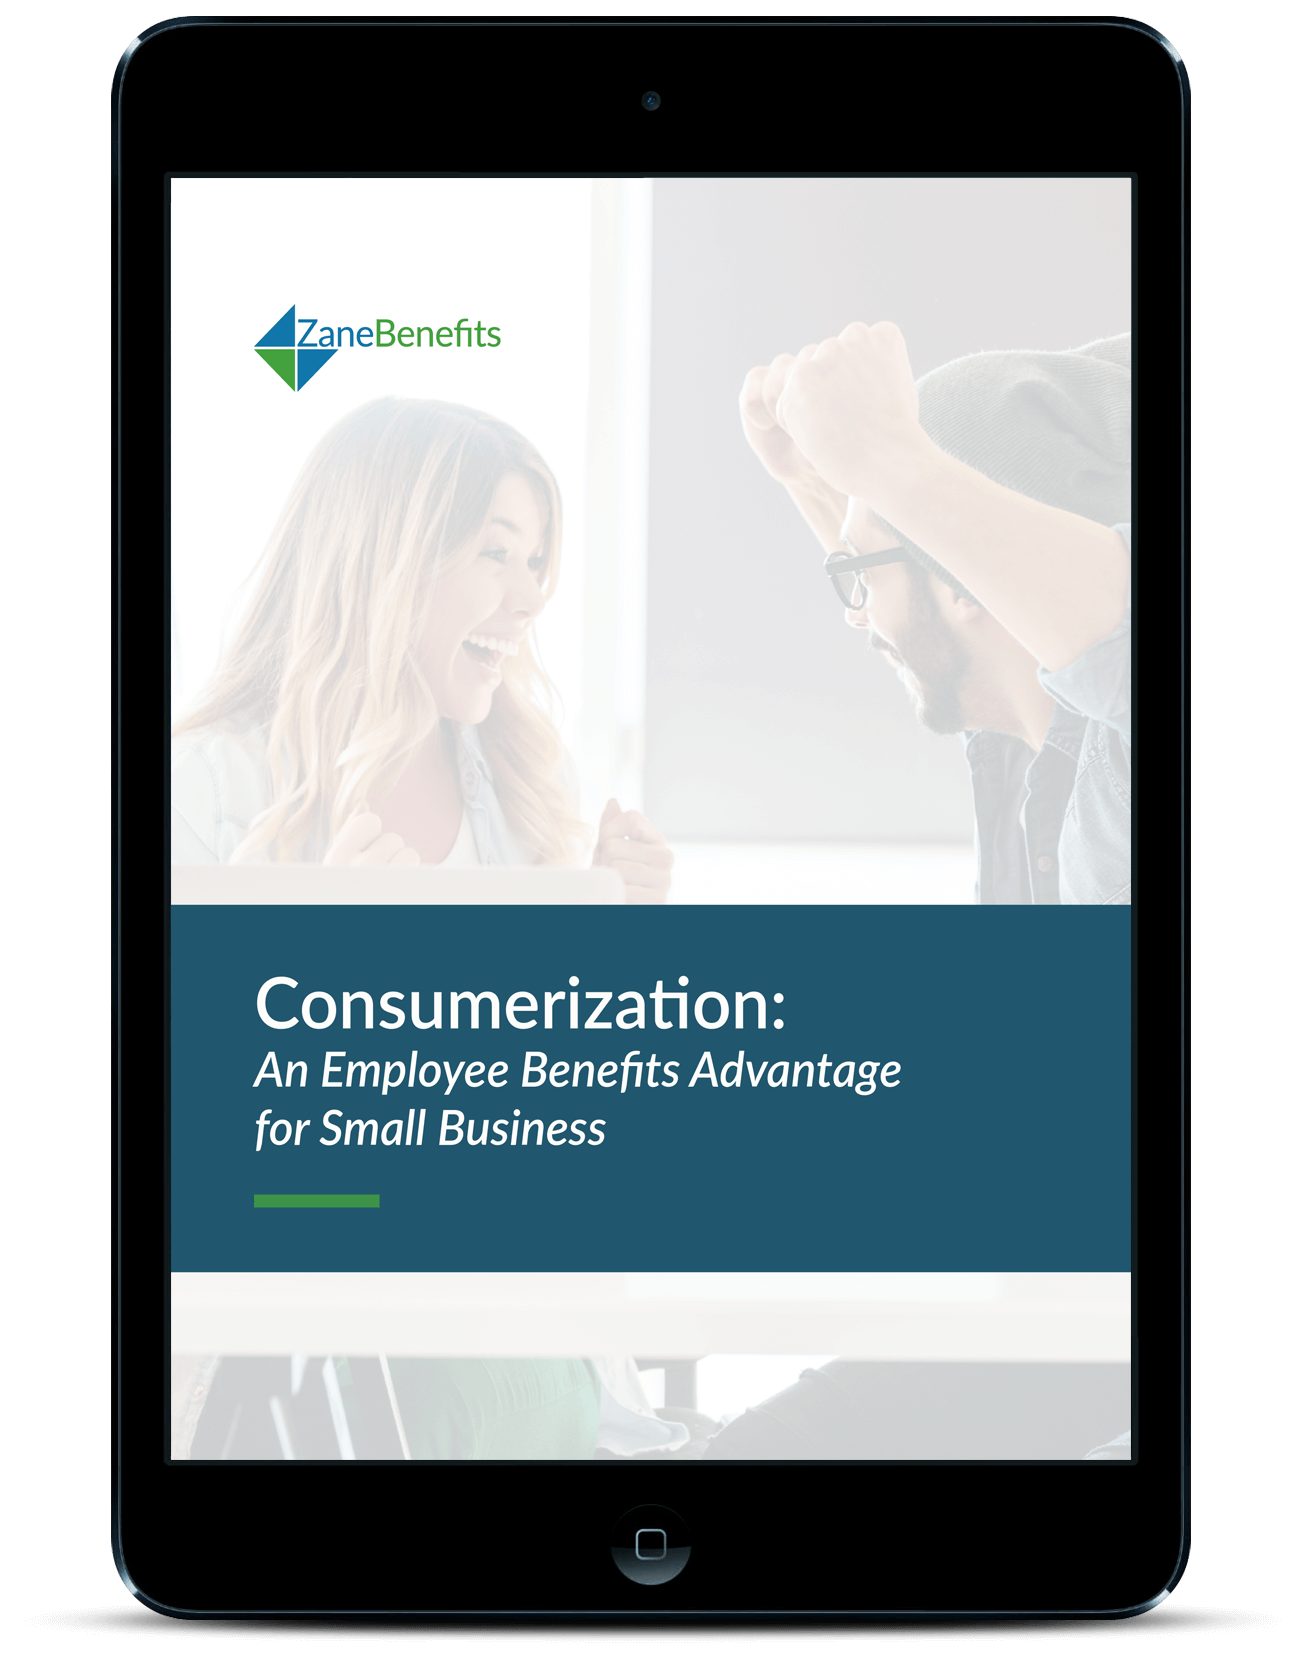 Consumerization - An Employee Benefits Advantage for Small Business